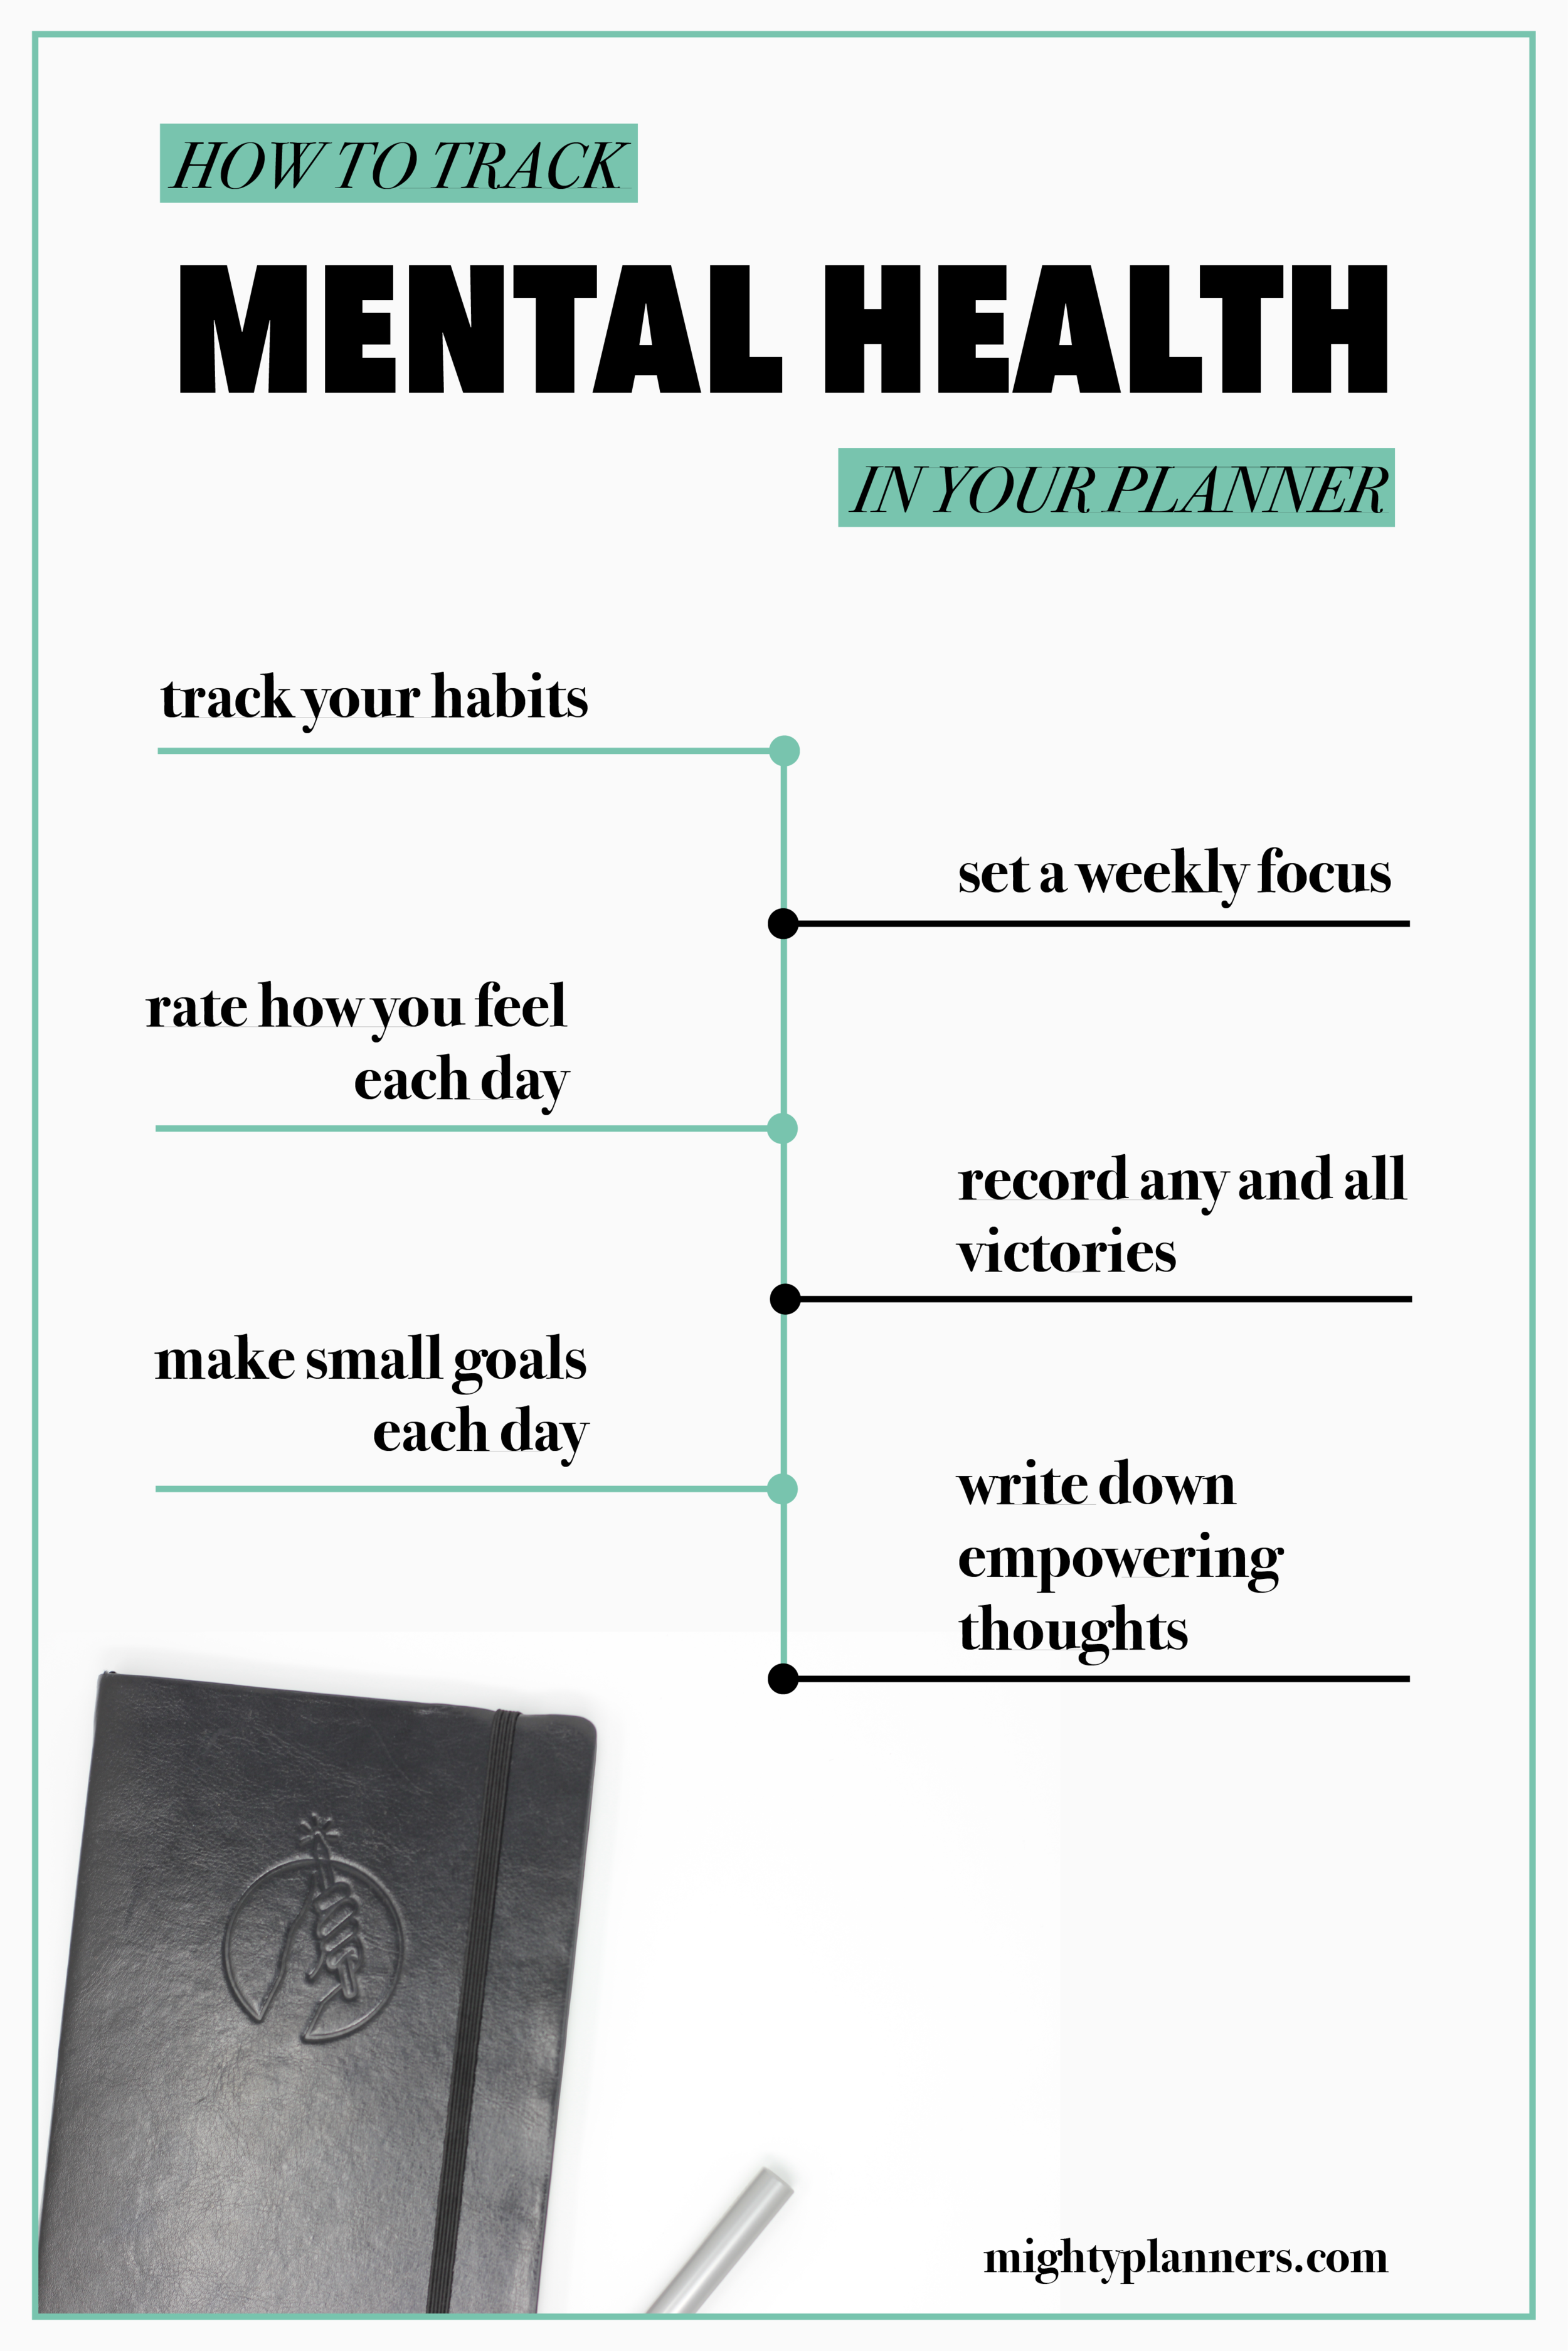 Mighty Planners Pin 1-01.png